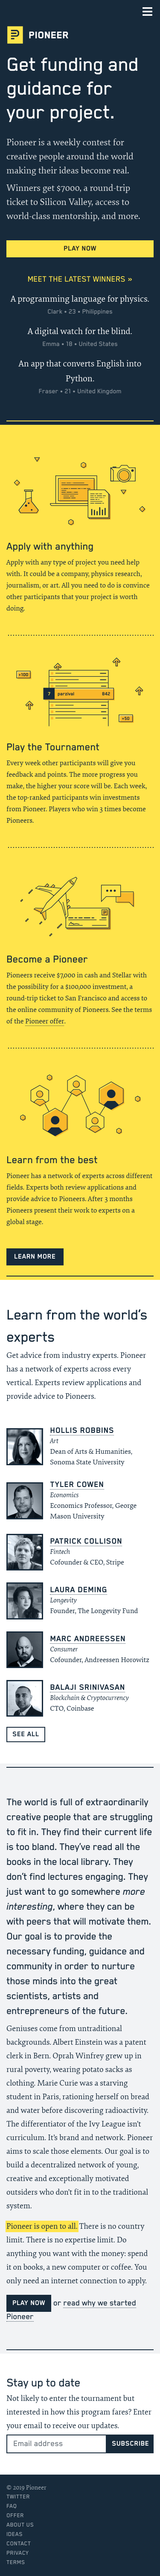 Example of Design for Business & Industrial, Business Finance, Venture Capital, Mobile Landing Page by pioneer.app   Mobile Landing Page Design